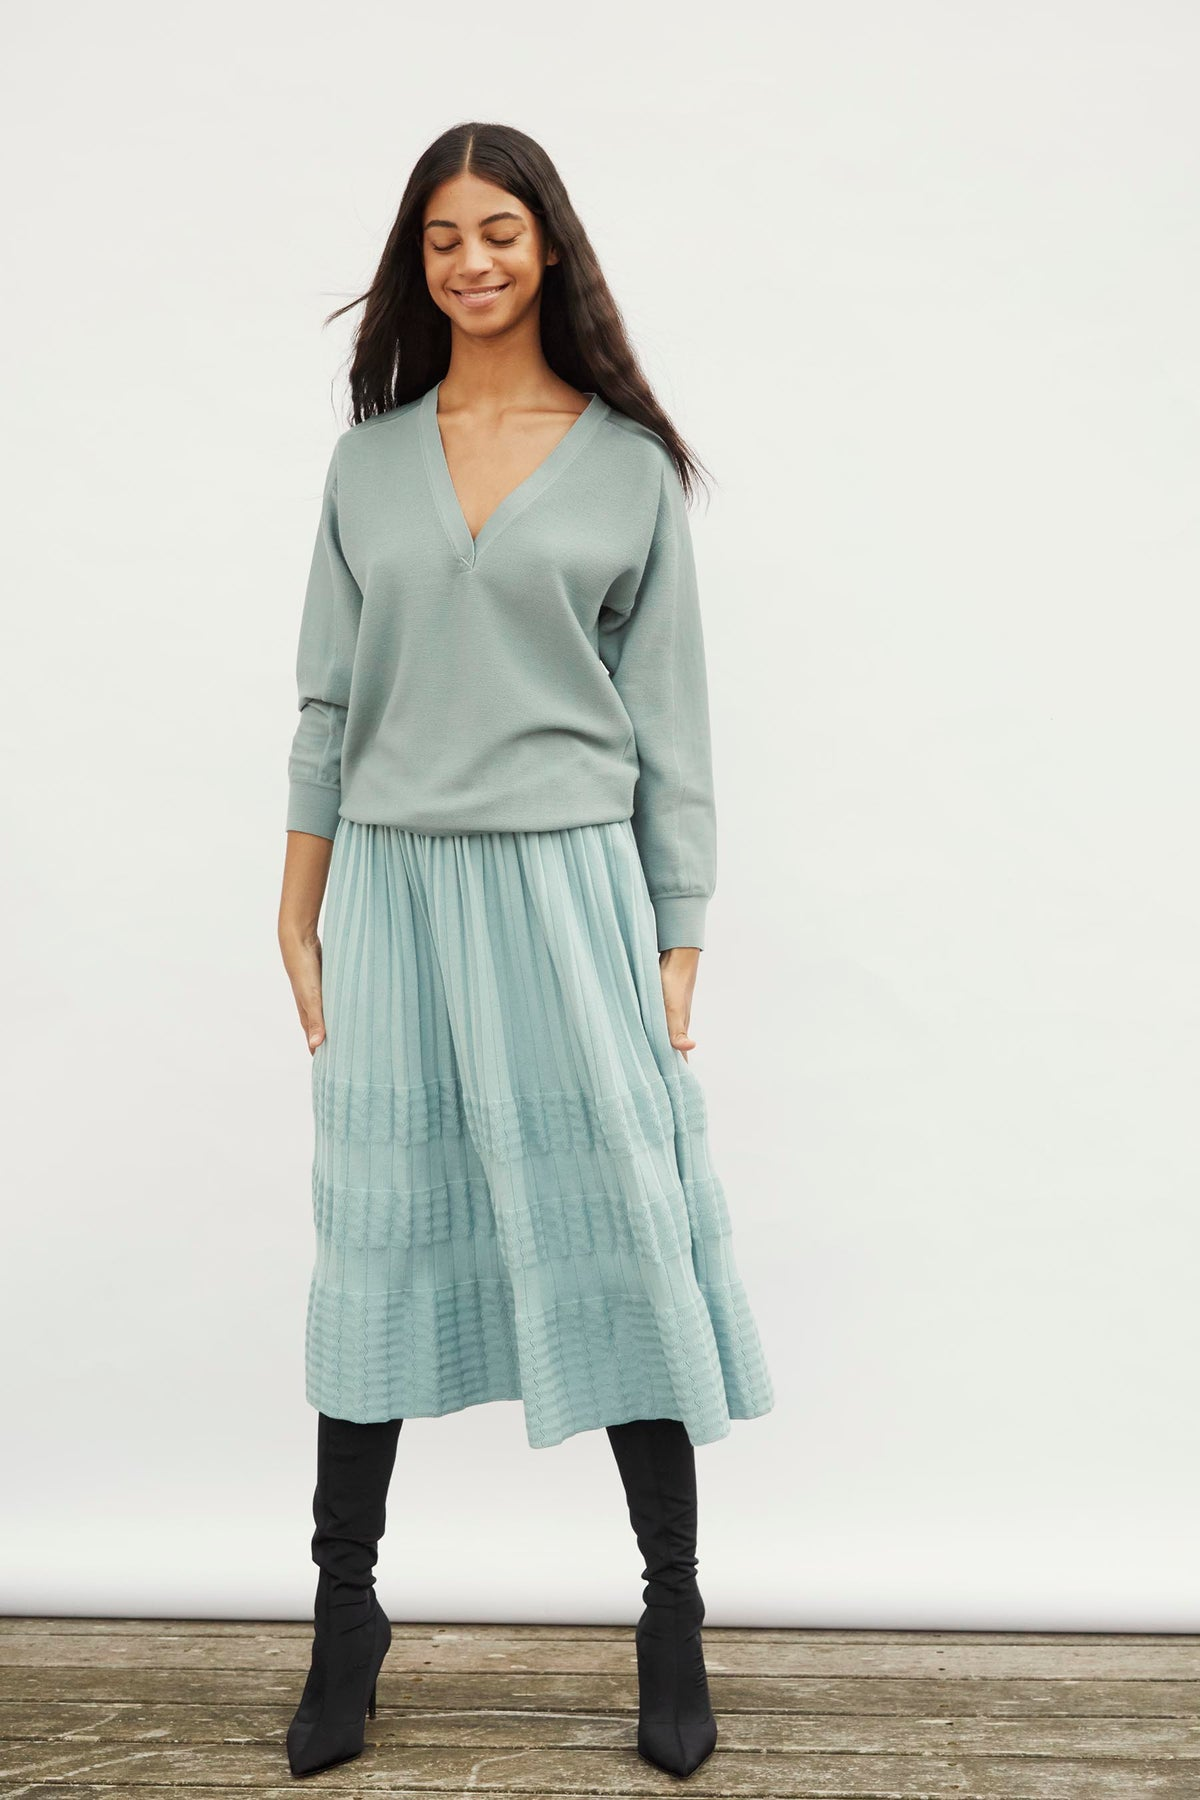 Molli Blown Pleated Skirt in Cloud Blue